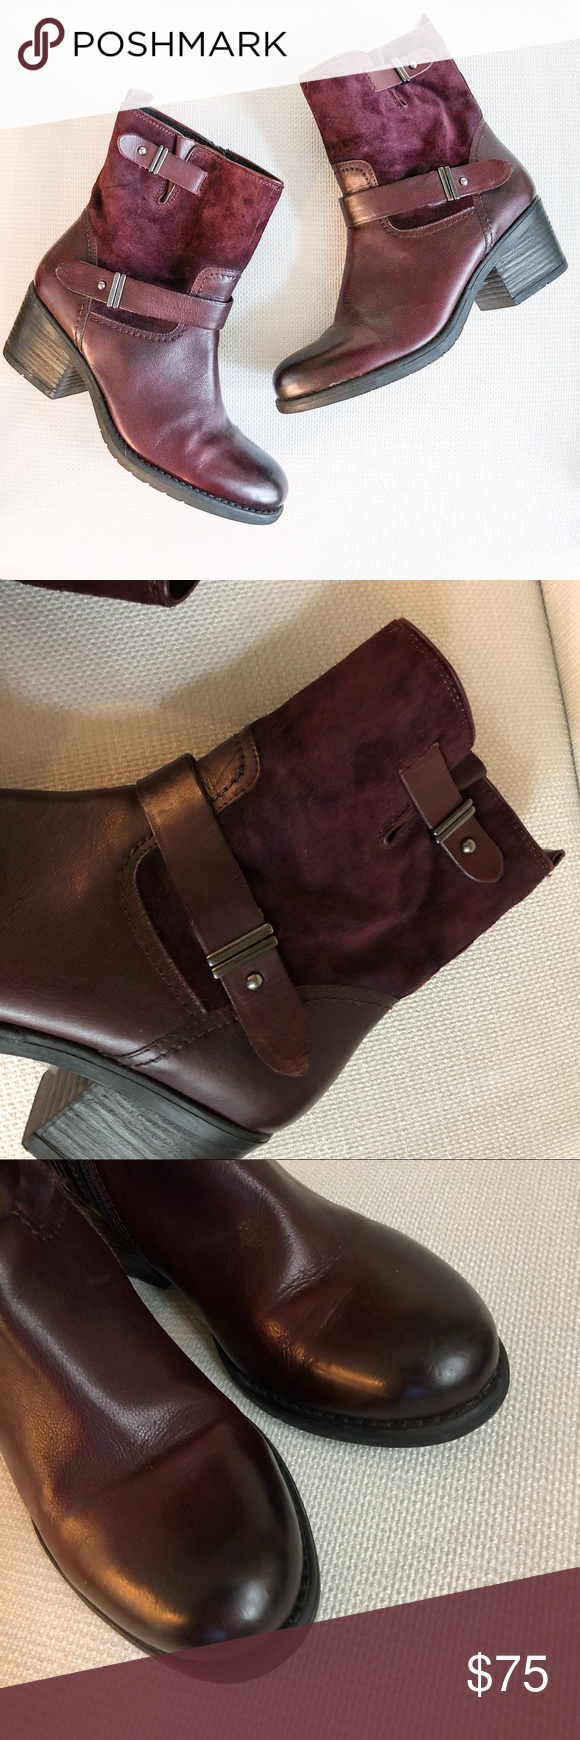 Clarks Mojita Sorbet bucked suede boots burgundy Adorable Clarks boots in  burgundy - perfect for Fall! Suede top section and leather on the bottom.